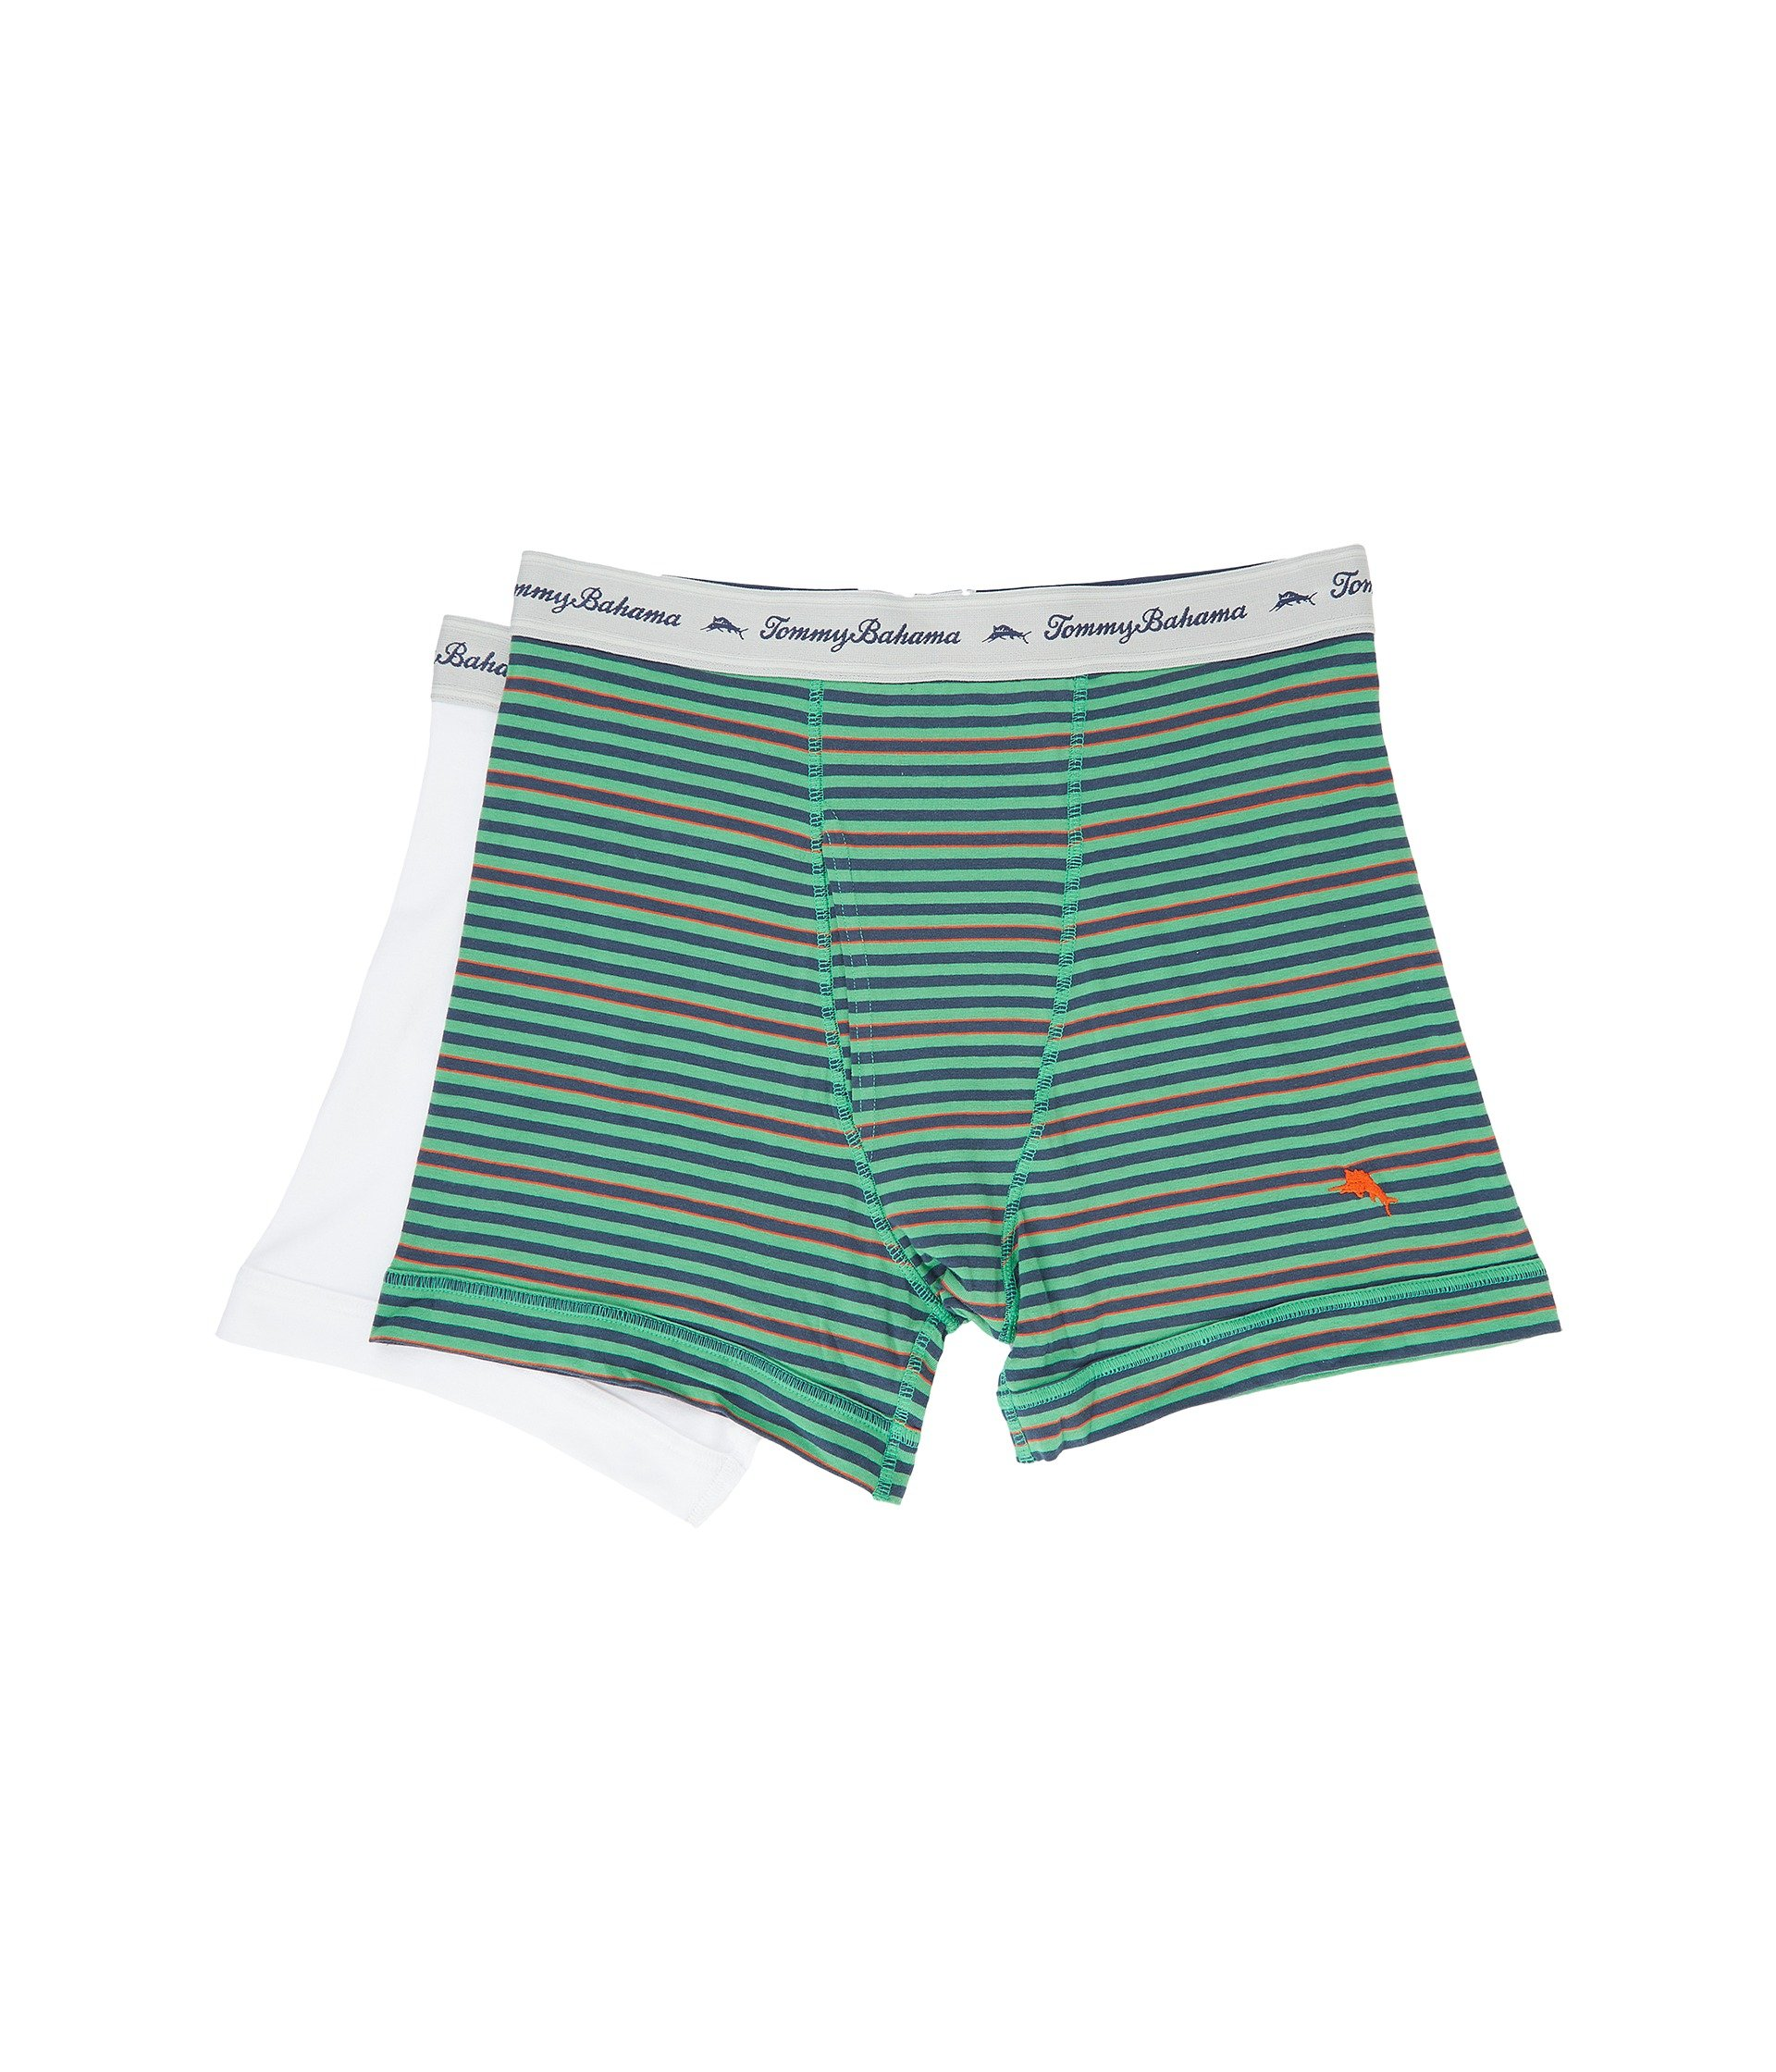 Ropa Interior para Hombre Tommy Bahama Stripe Stretch Cotton Comfort Boxer Briefs 2-Pack  + Tommy Bahama en VeoyCompro.net